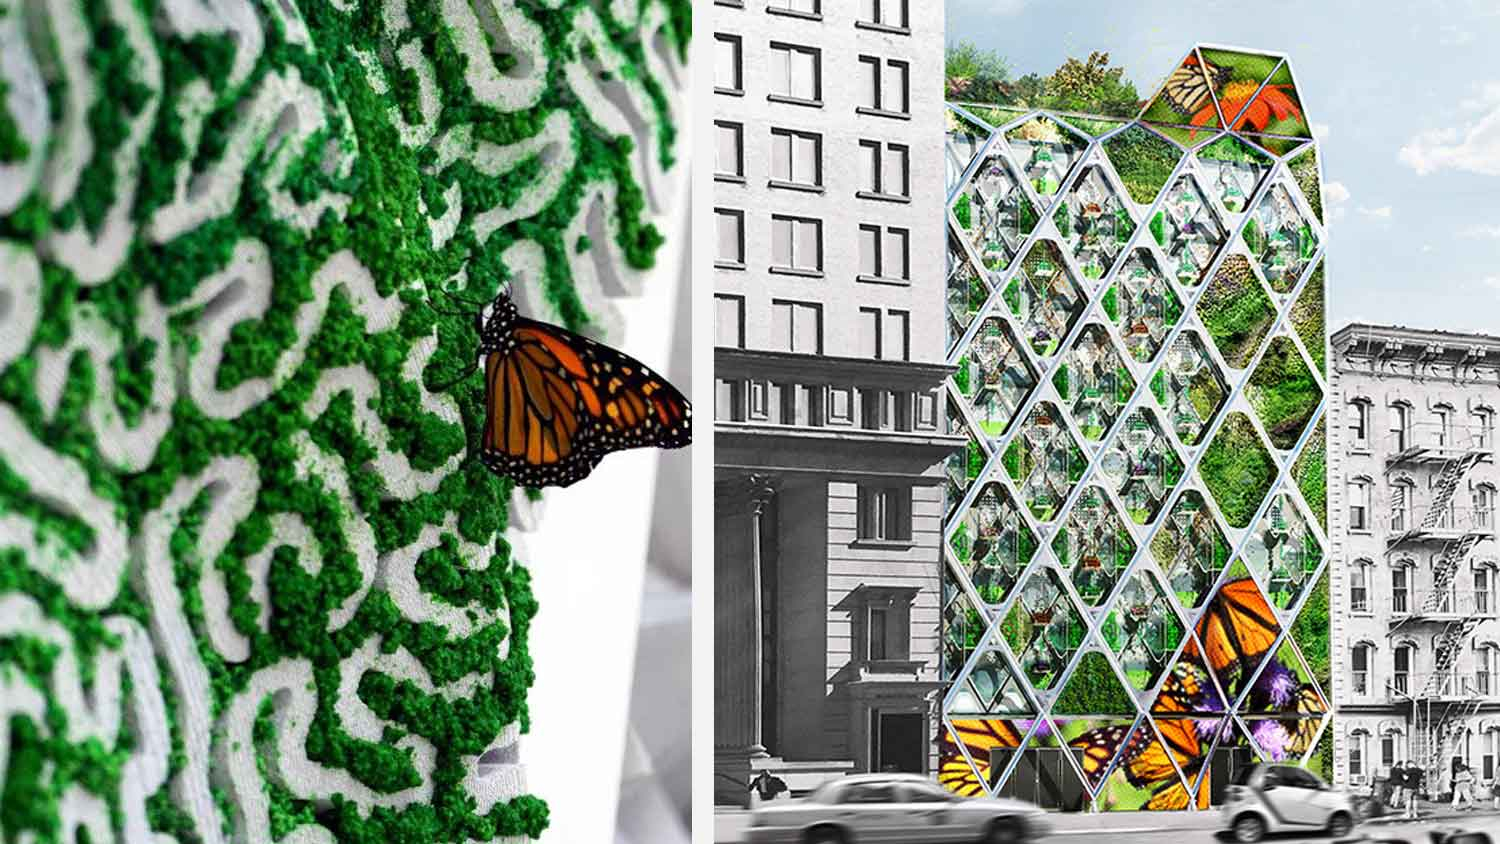 This New York Office Building Doubles As a Butterfly Sanctuary